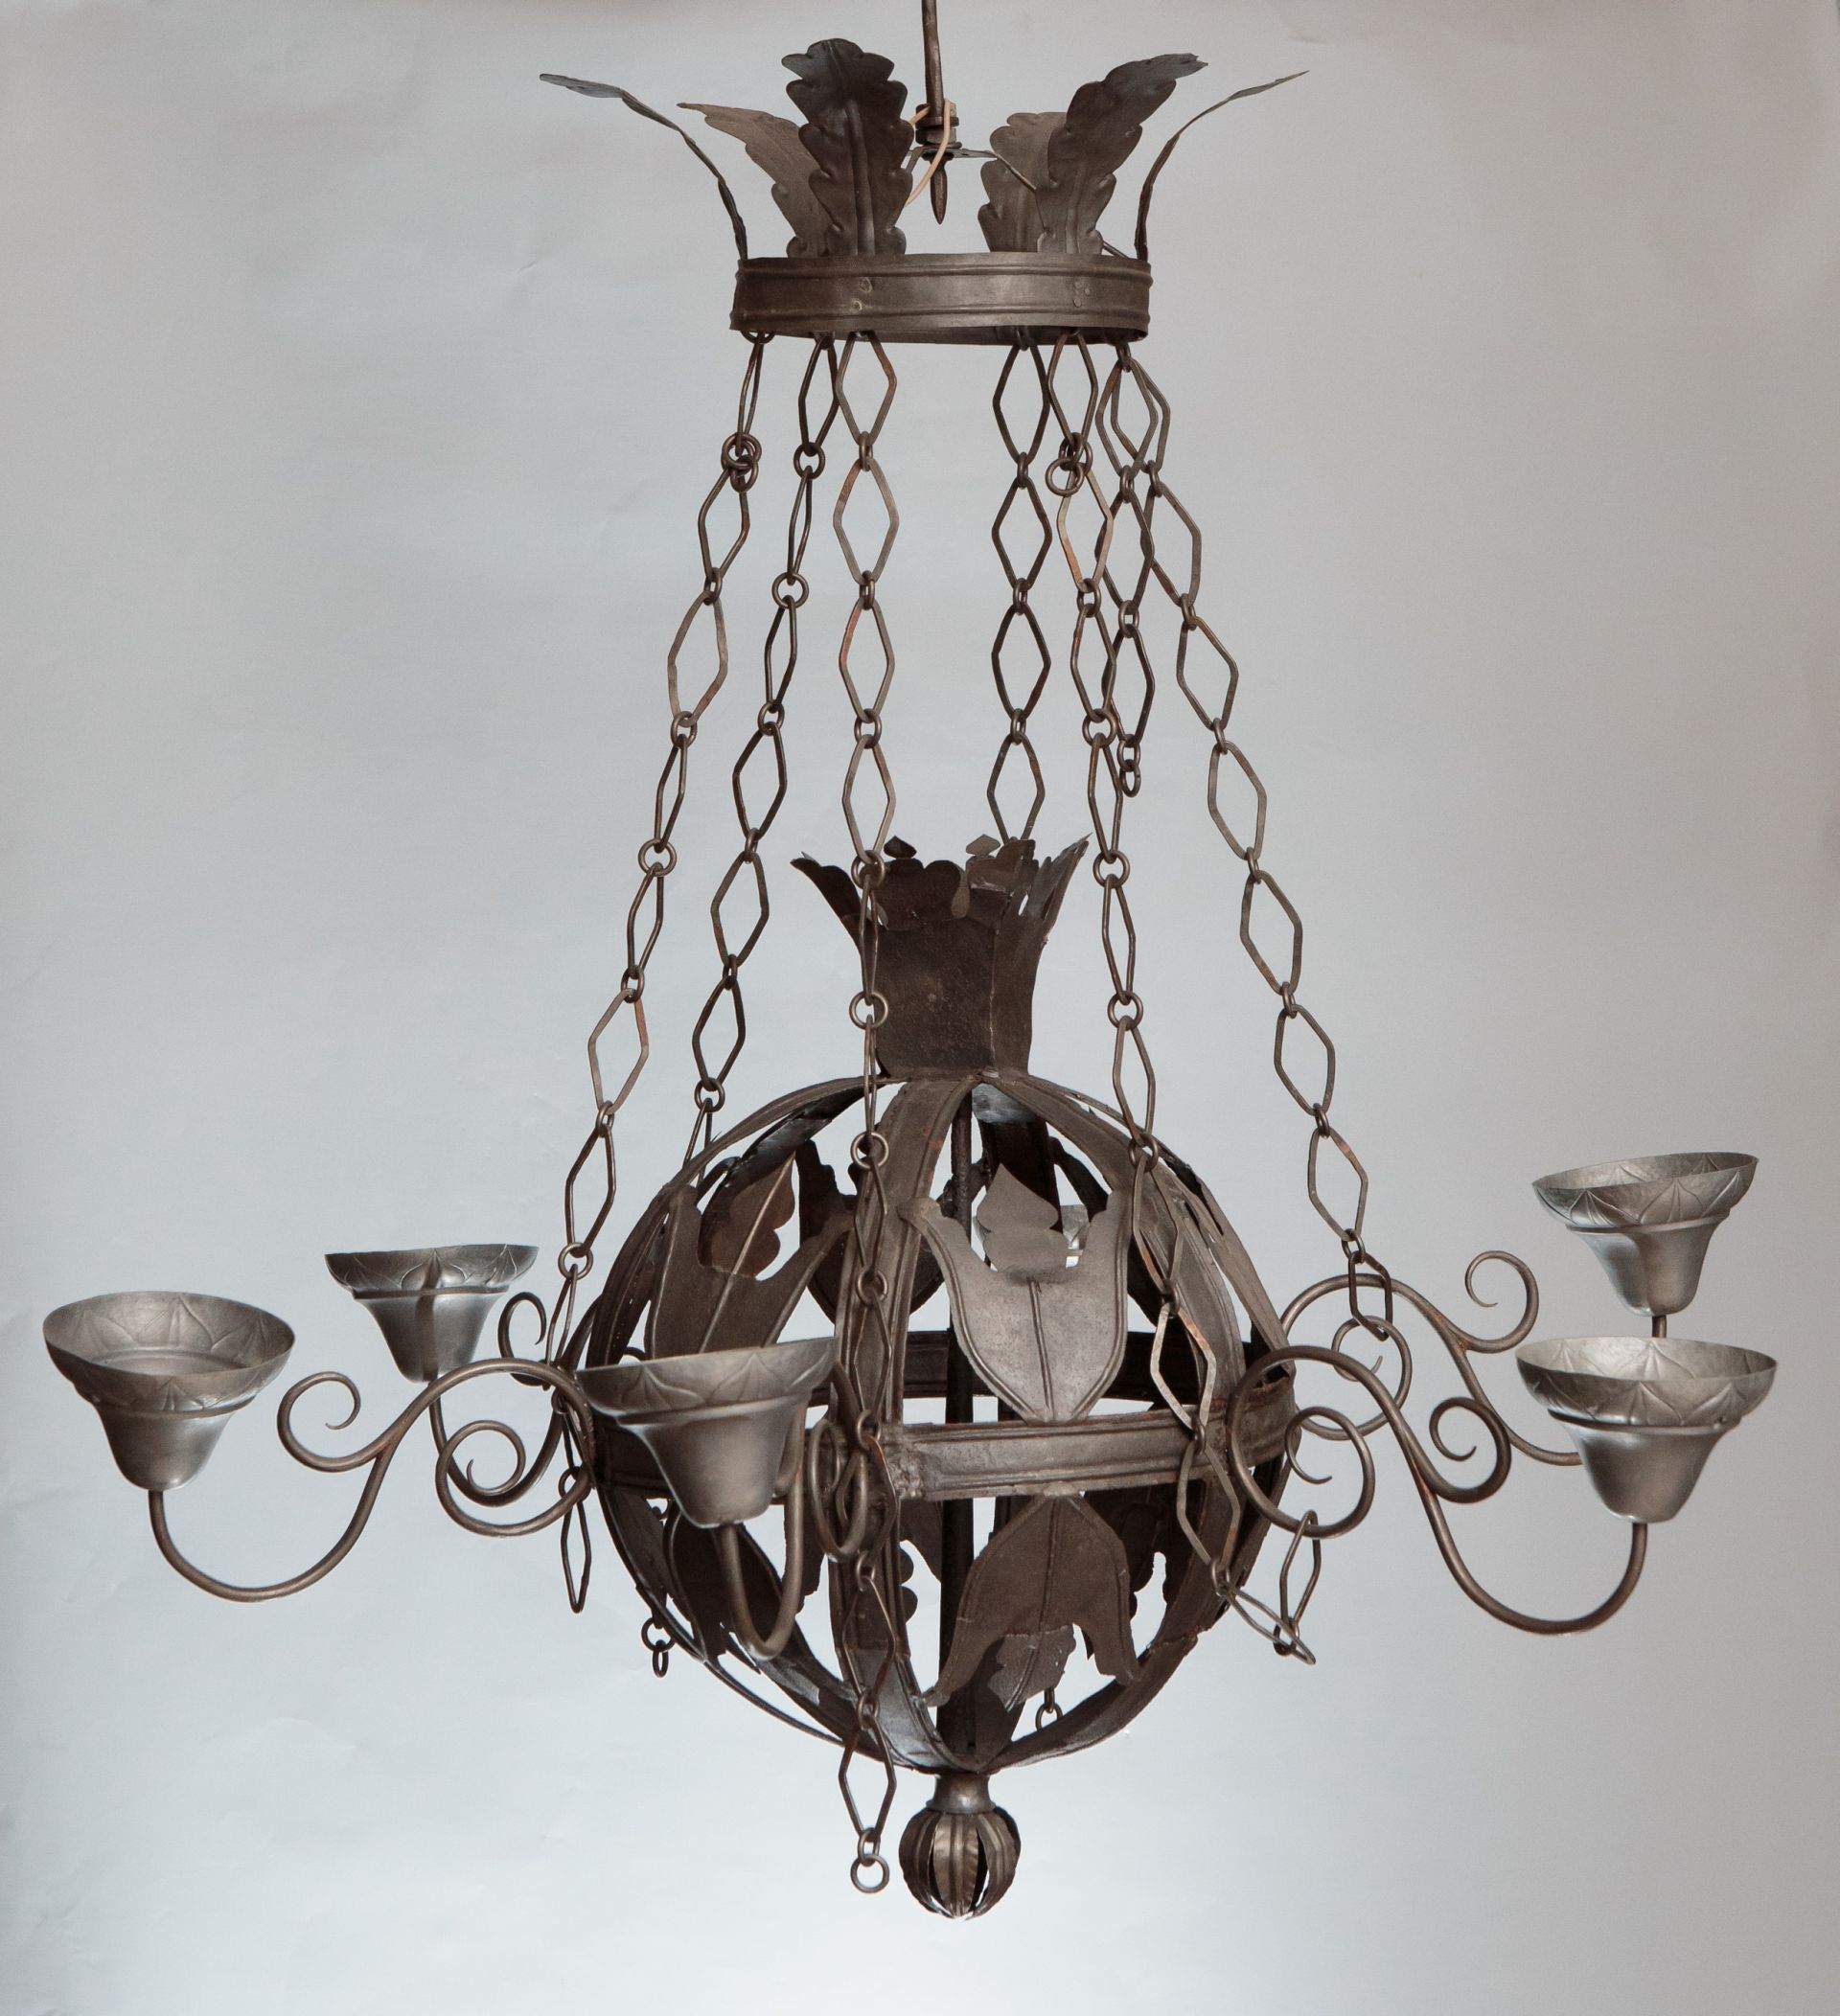 Chandelier, 1600–1650, Lithuanian National Museum of Art, TM-522. Photo by Tomas Kapočius, 2017